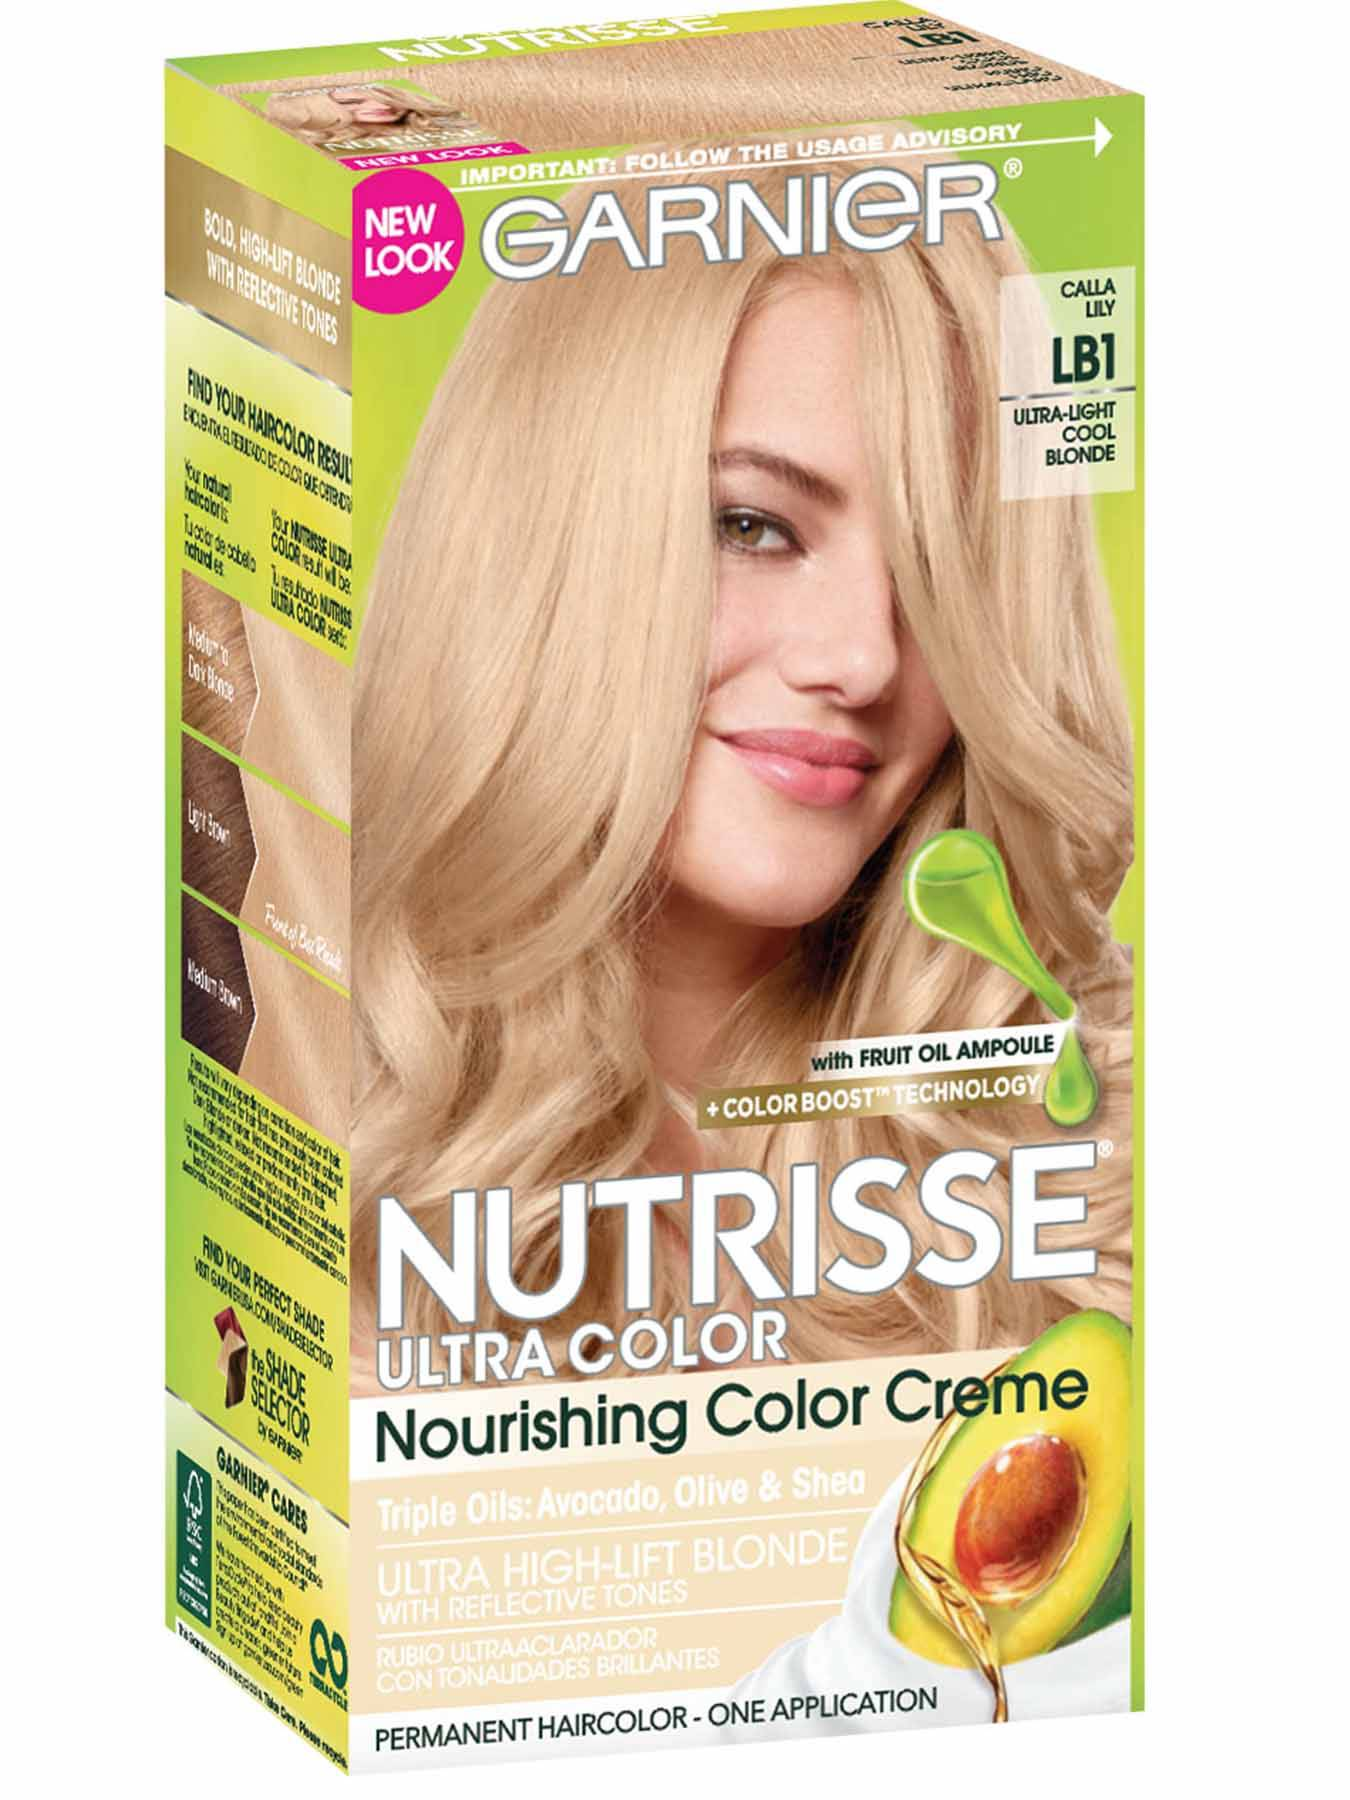 Nutrisse Ultra Color Ultra Light Cool Blonde Hair Color Garnier